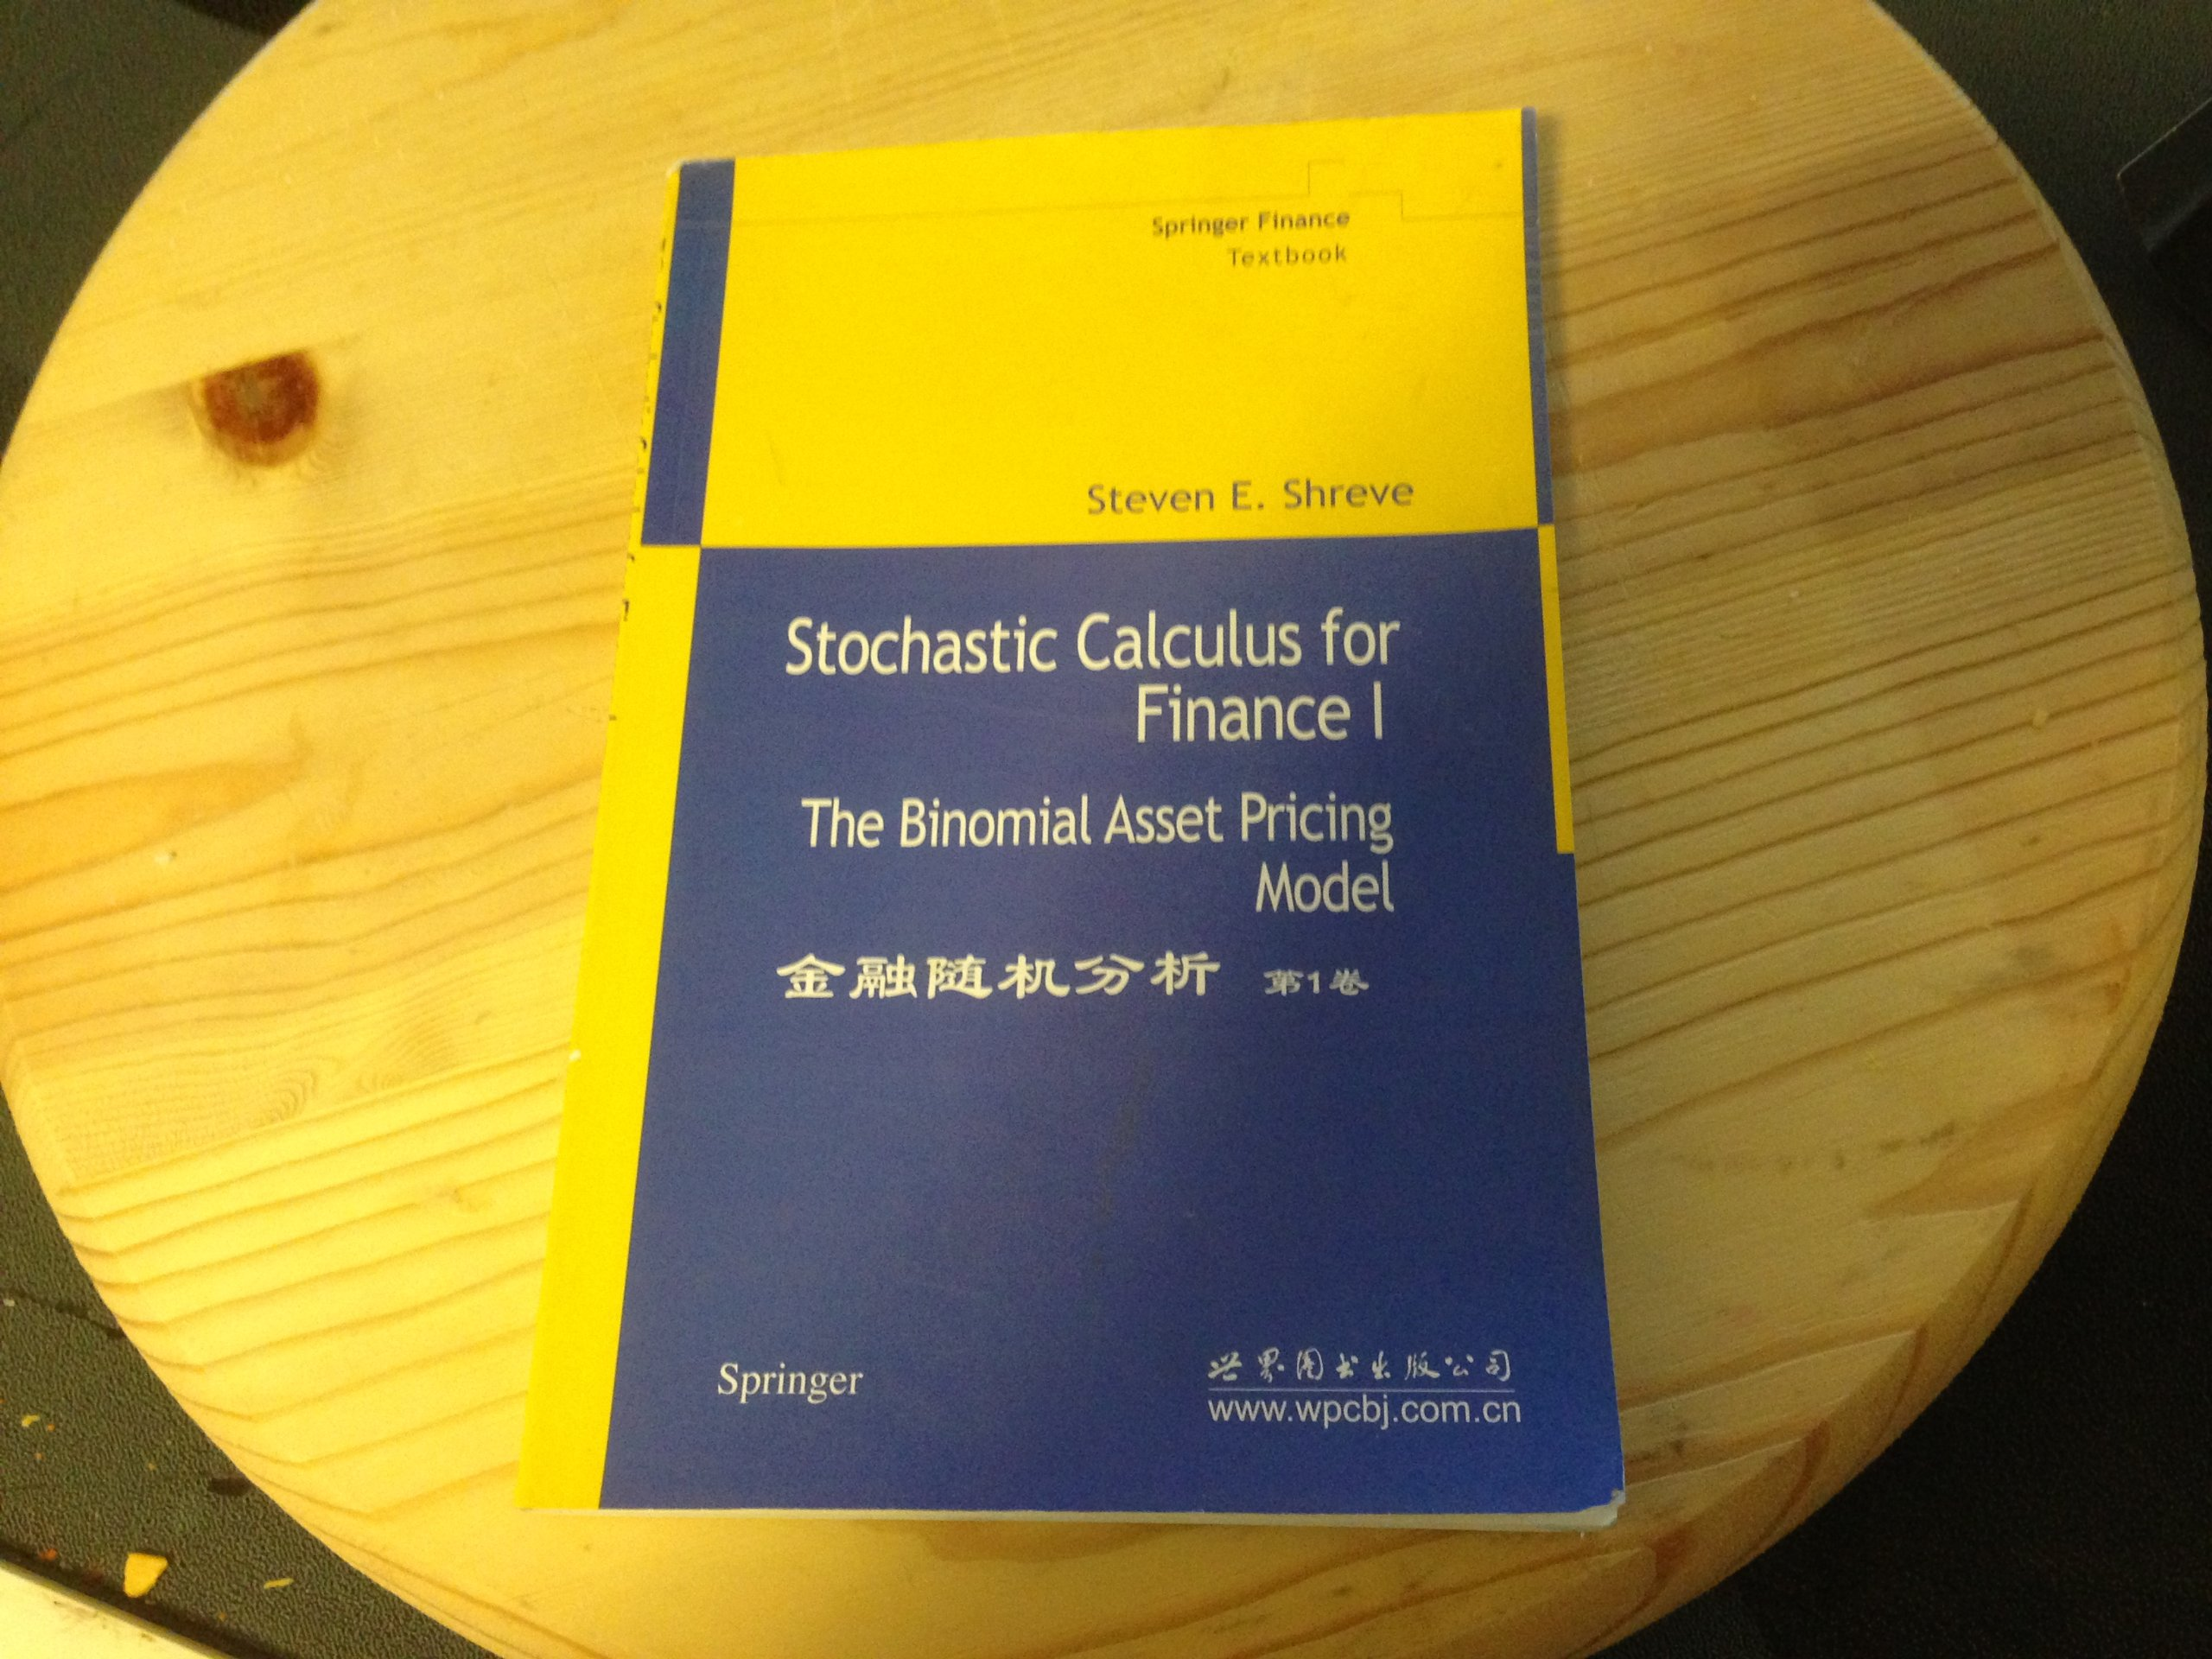 Download Stochastic Calculus for Finance I: The Binomial Asset Pricing Model ebook